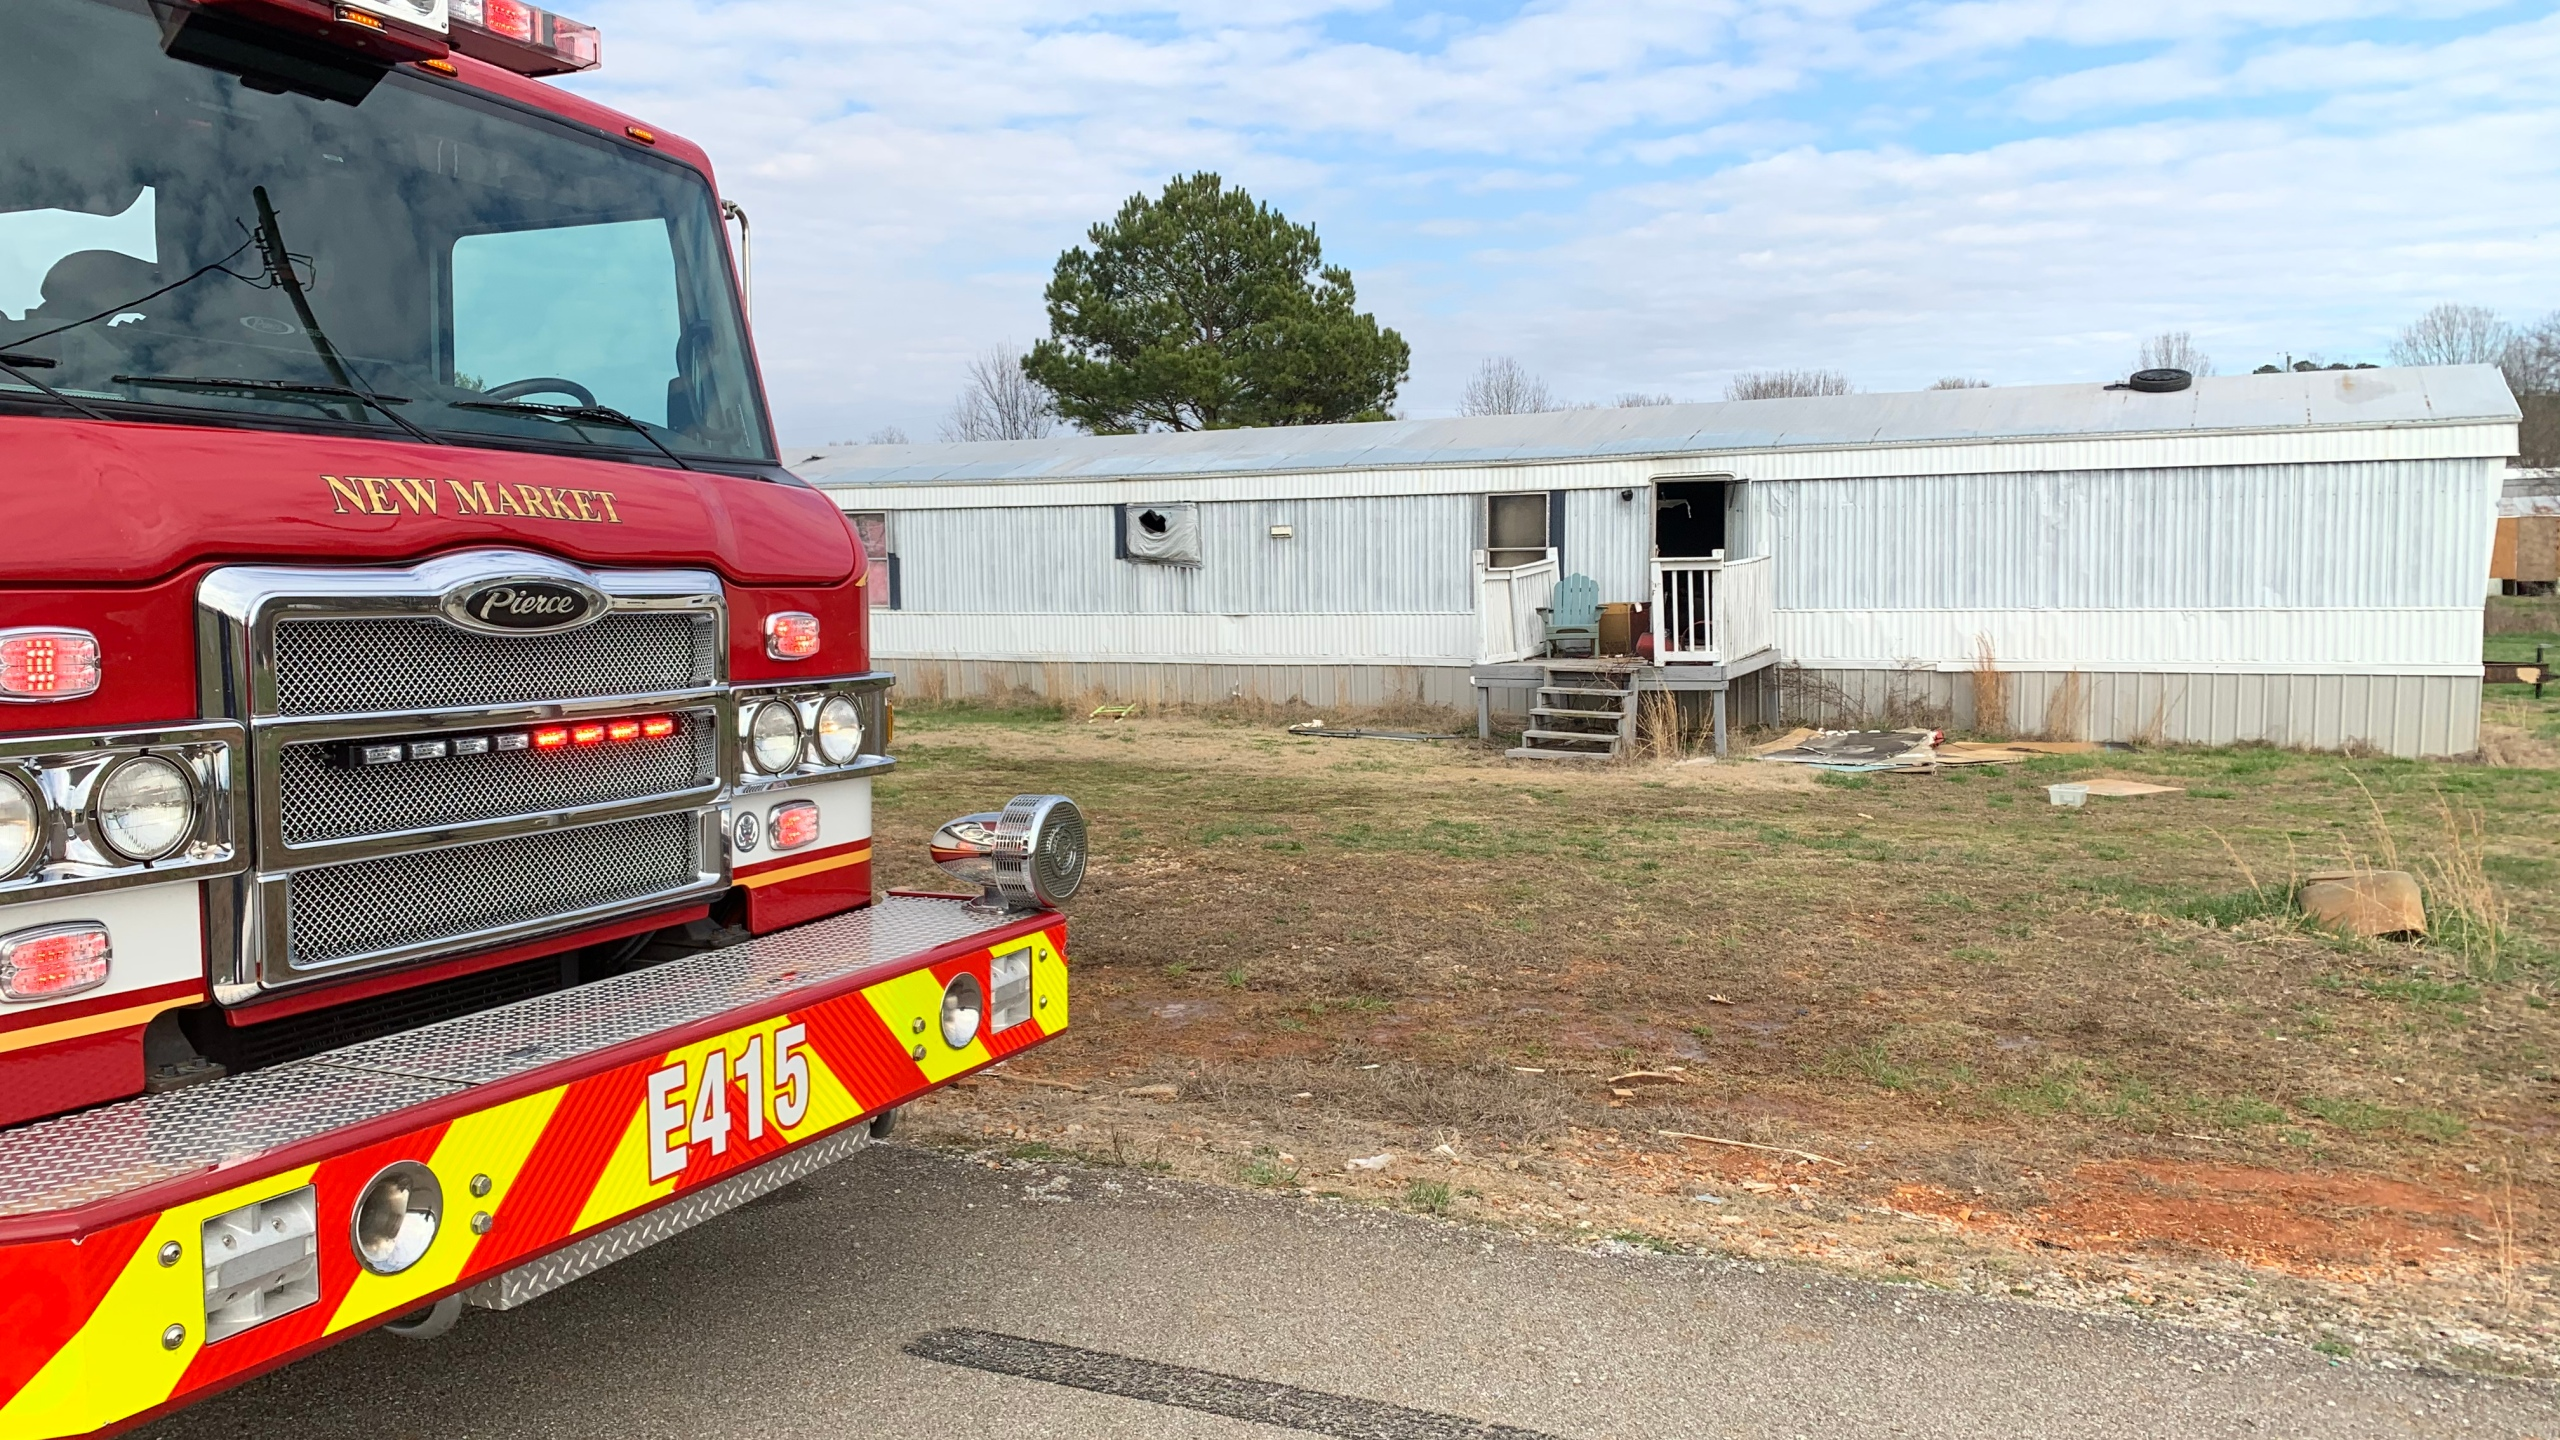 One person was injured after a house fire in New Market Sunday afternoon.